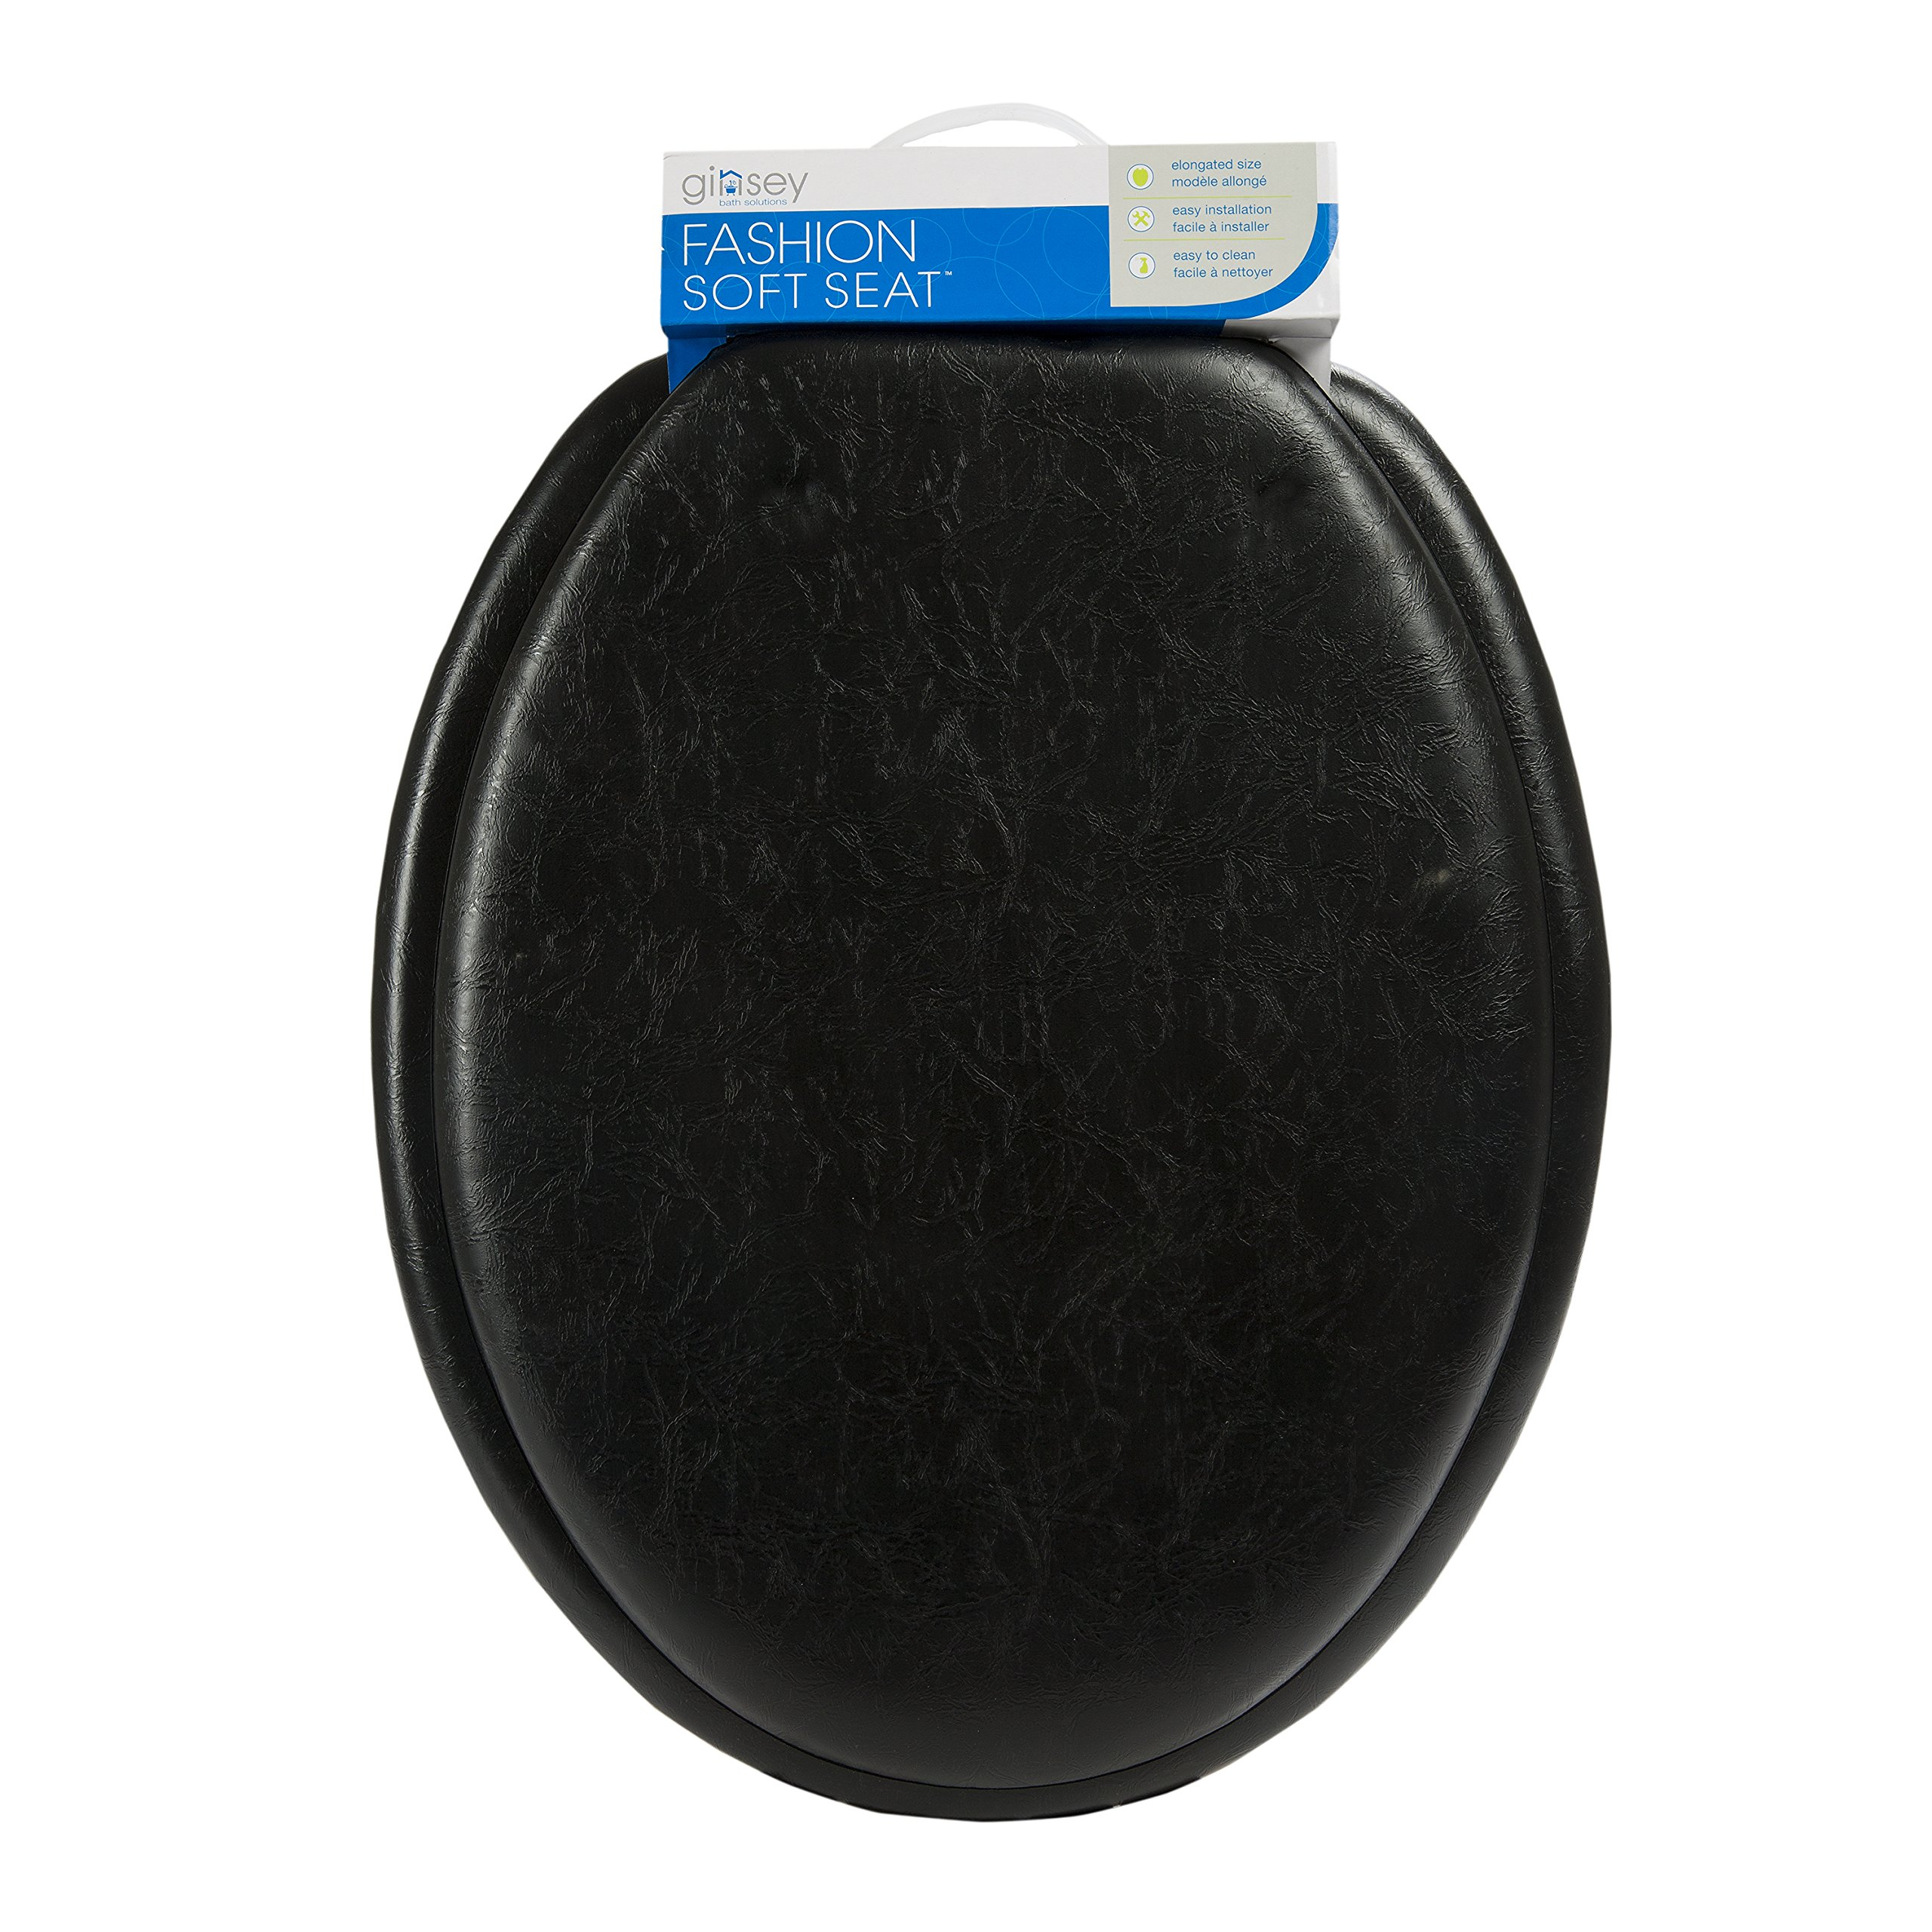 GINSEY CLASSIQUE ELONGATED CUSHION SOFT PADDED TOILET SEAT - BLACK by Ginsey